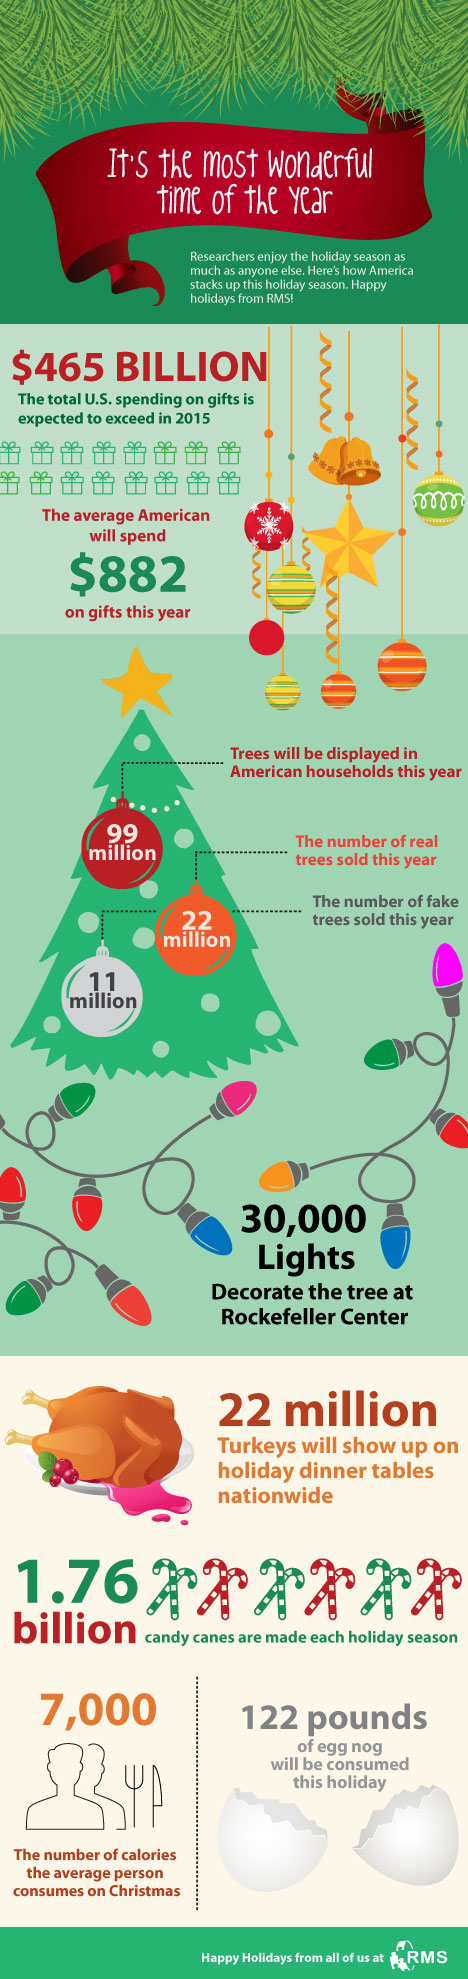 Happy-Holidays-infographic